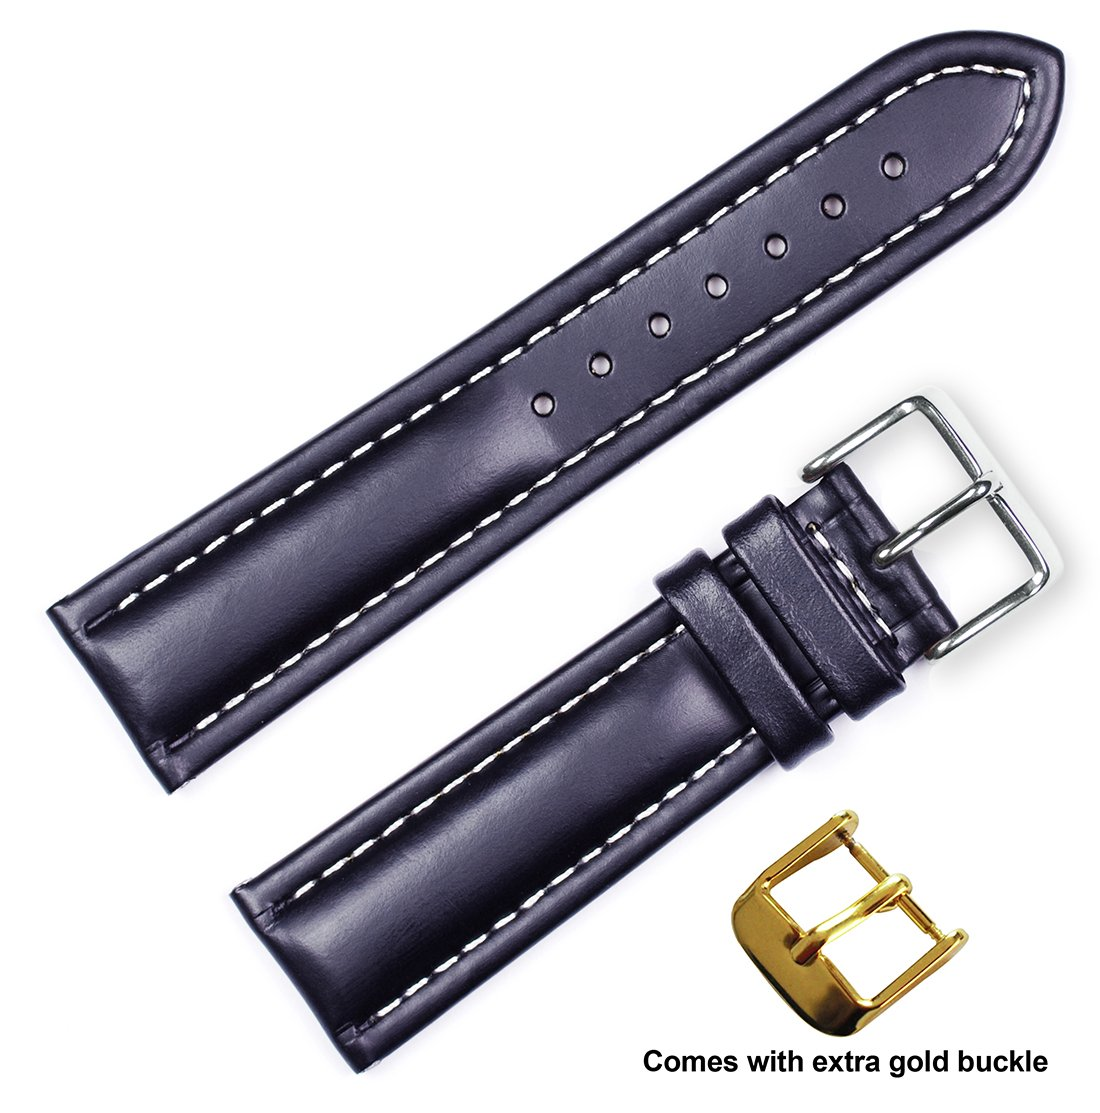 Breitling Style Oil Tanned Leather Watch Band (ロング丈) (18、20、または22 mm) (シルバー&ゴールドバックル) 22mm ブラック 22mm|ブラック ブラック 22mm B06XD4DSYL